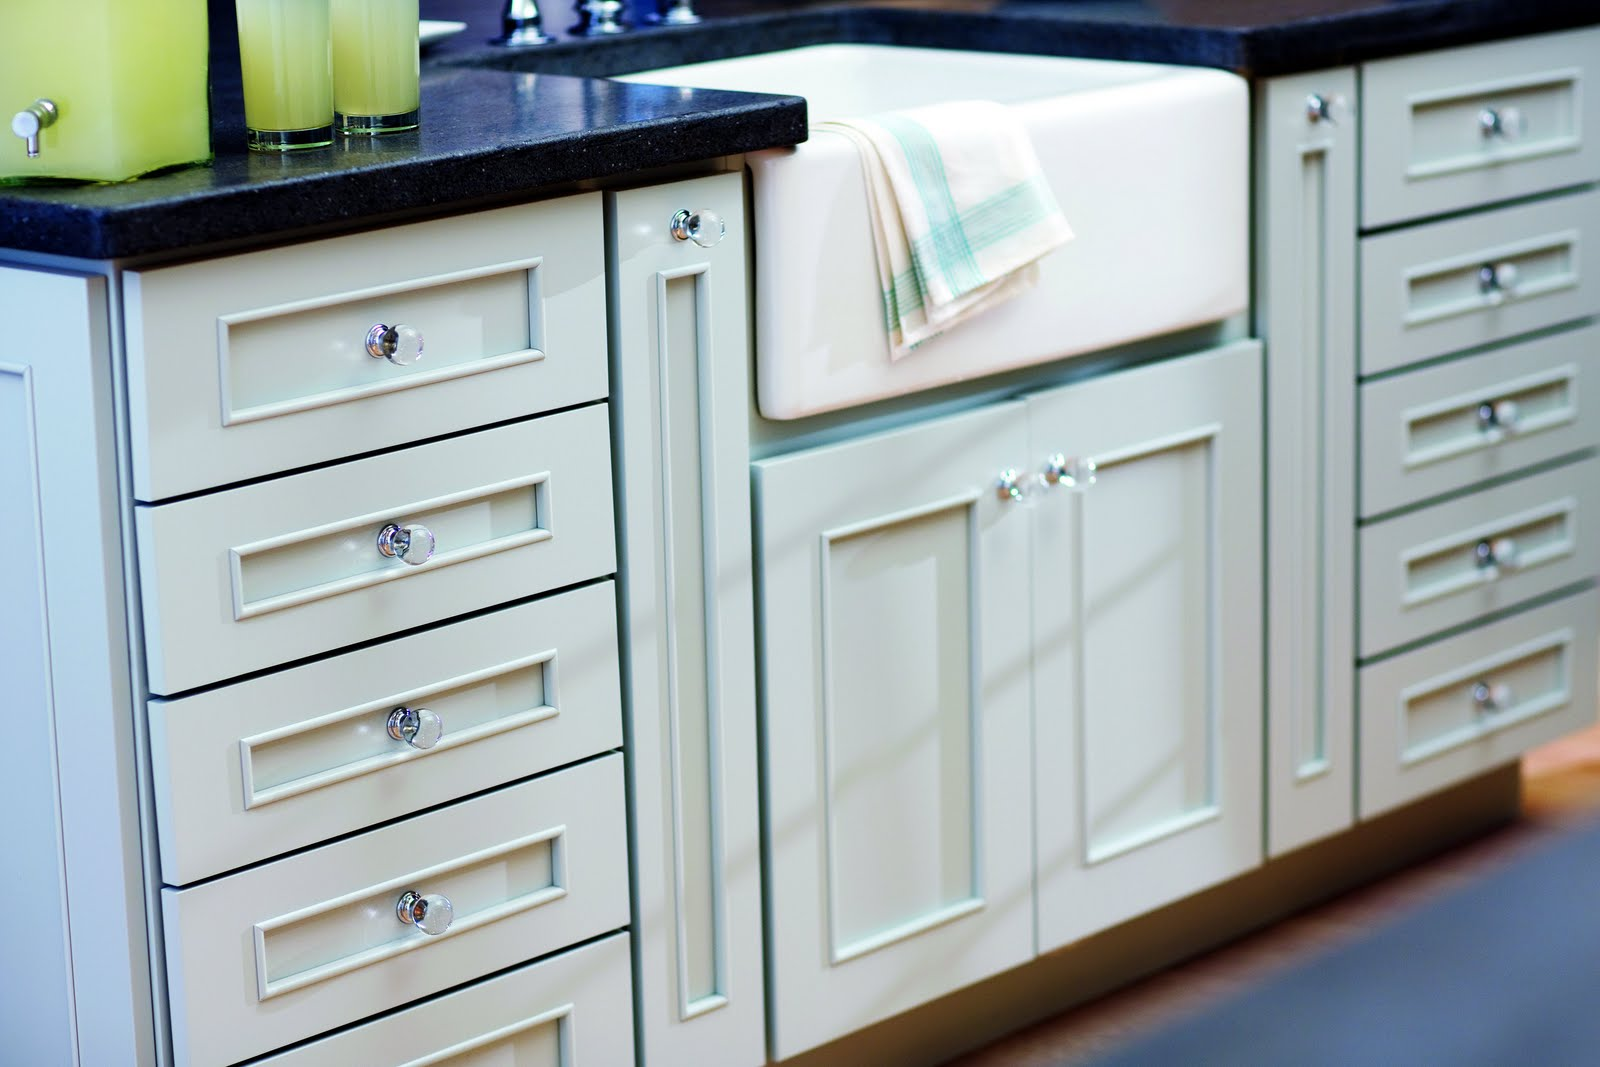 Kitchen Cabinet Handles-5 Top Tips to Help You Choose the Right Ones